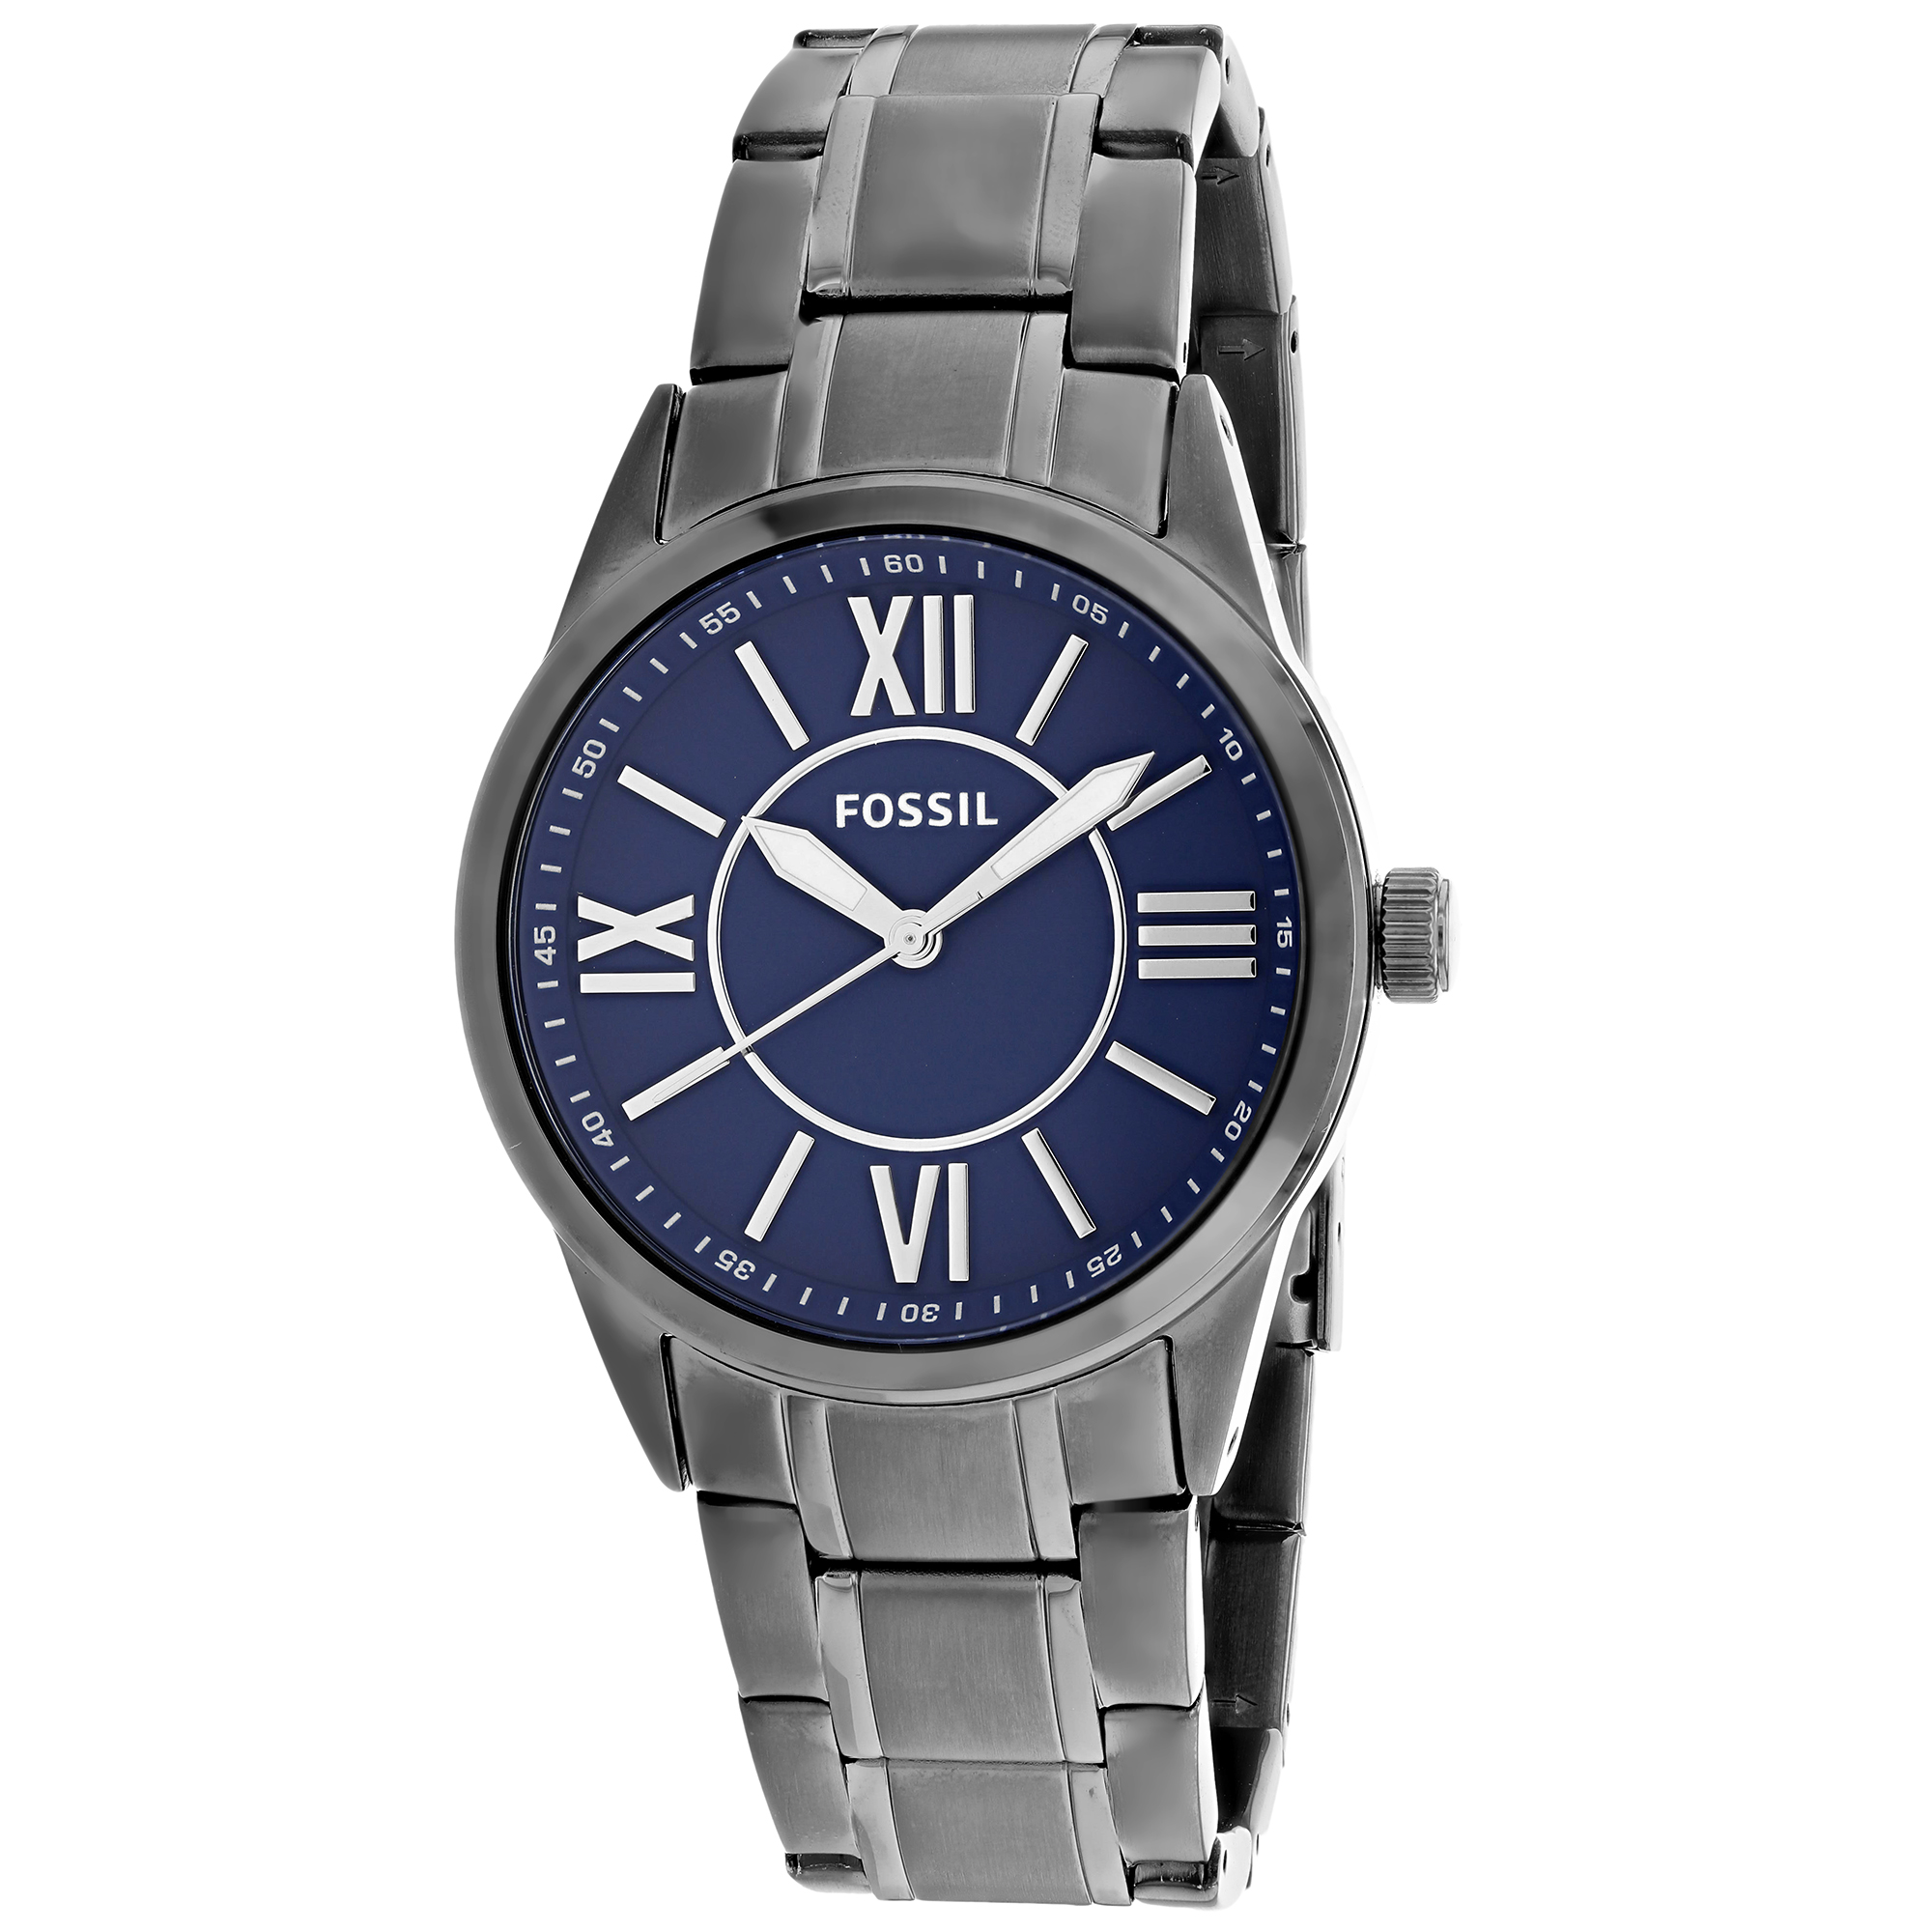 Fossil Classic Watch